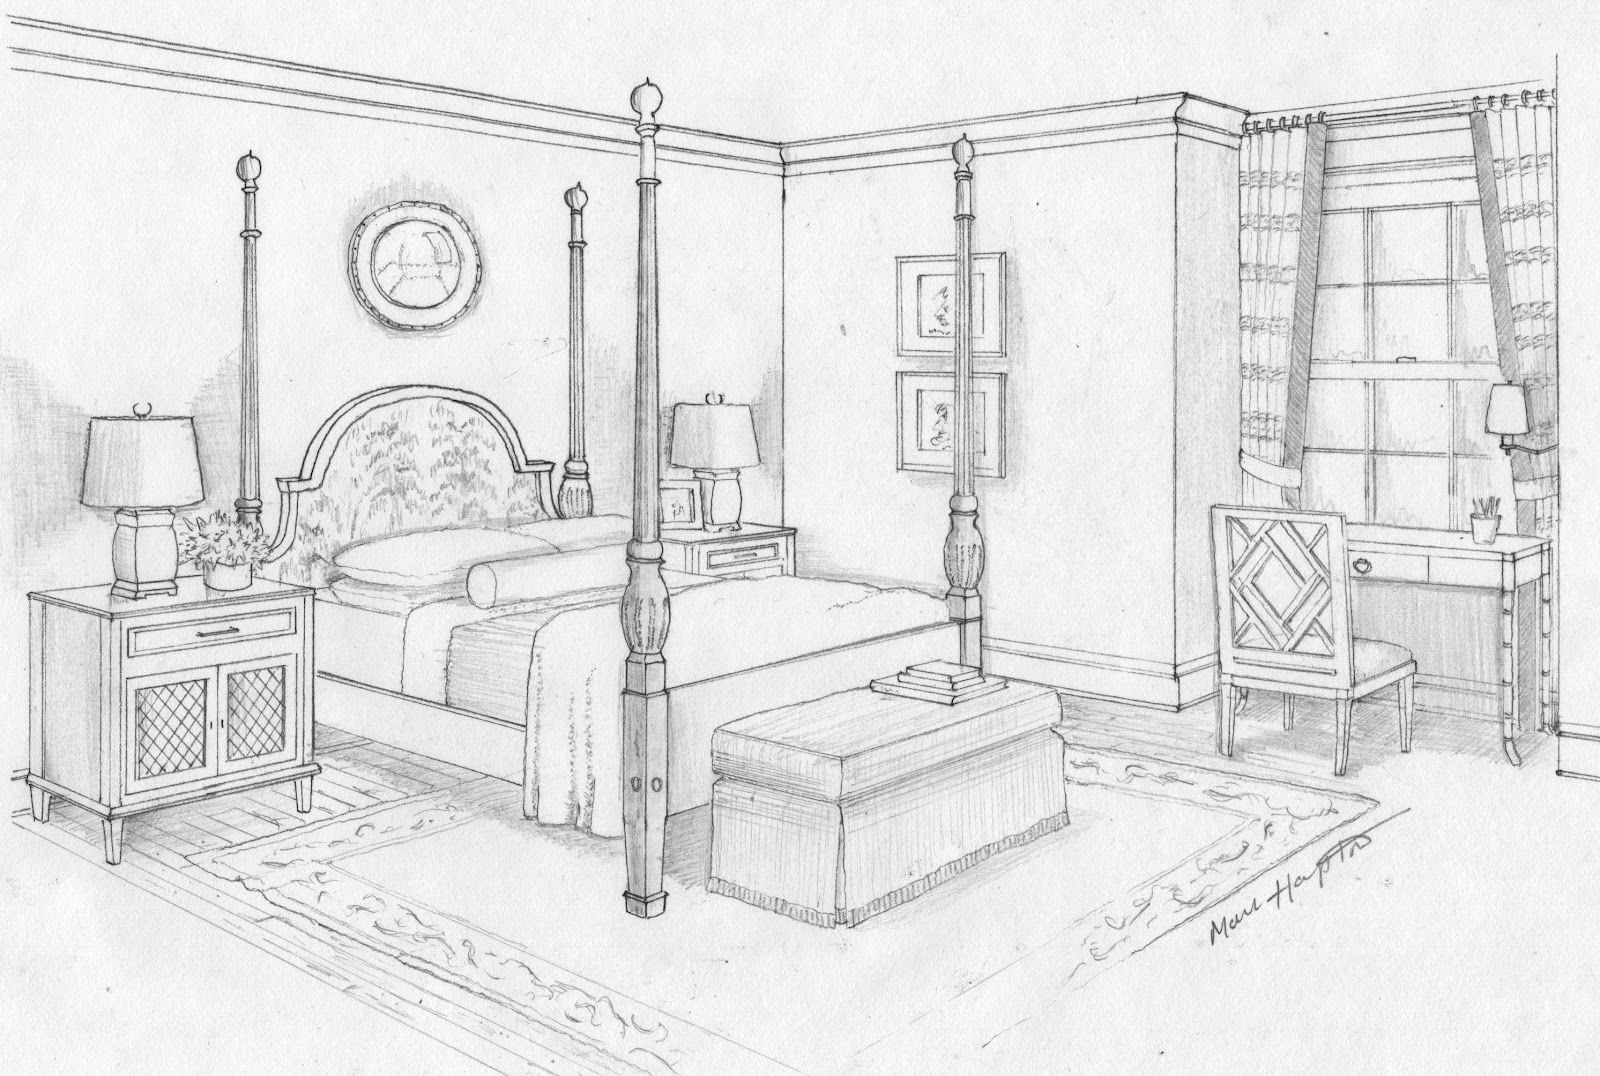 dream bedroom sketch bedroom ideas pictures art bedroom drawing perspective sketch drawings. Black Bedroom Furniture Sets. Home Design Ideas